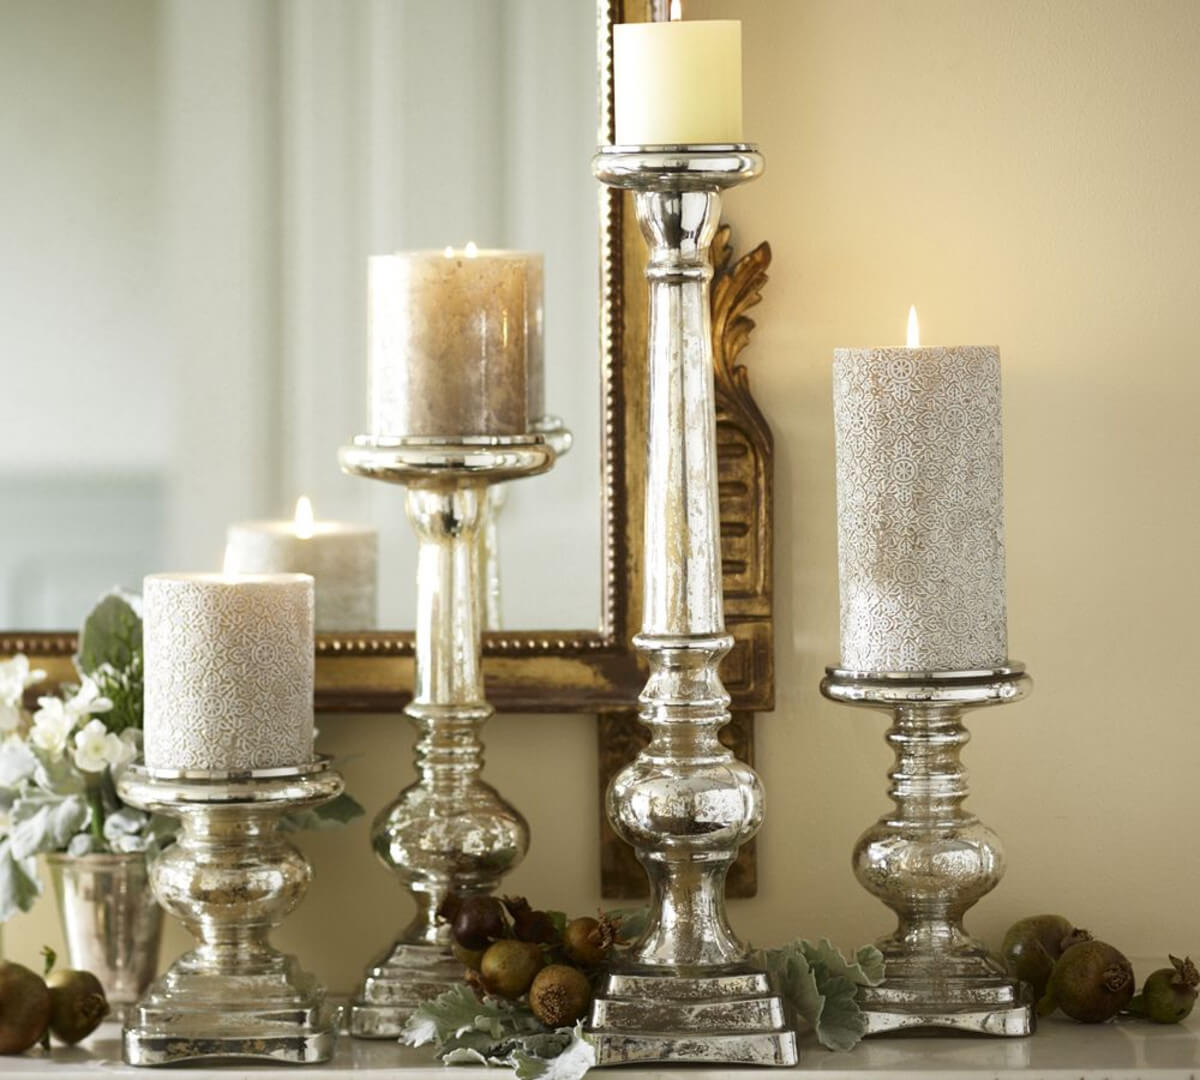 Antique Candlesticks for a Formal Look